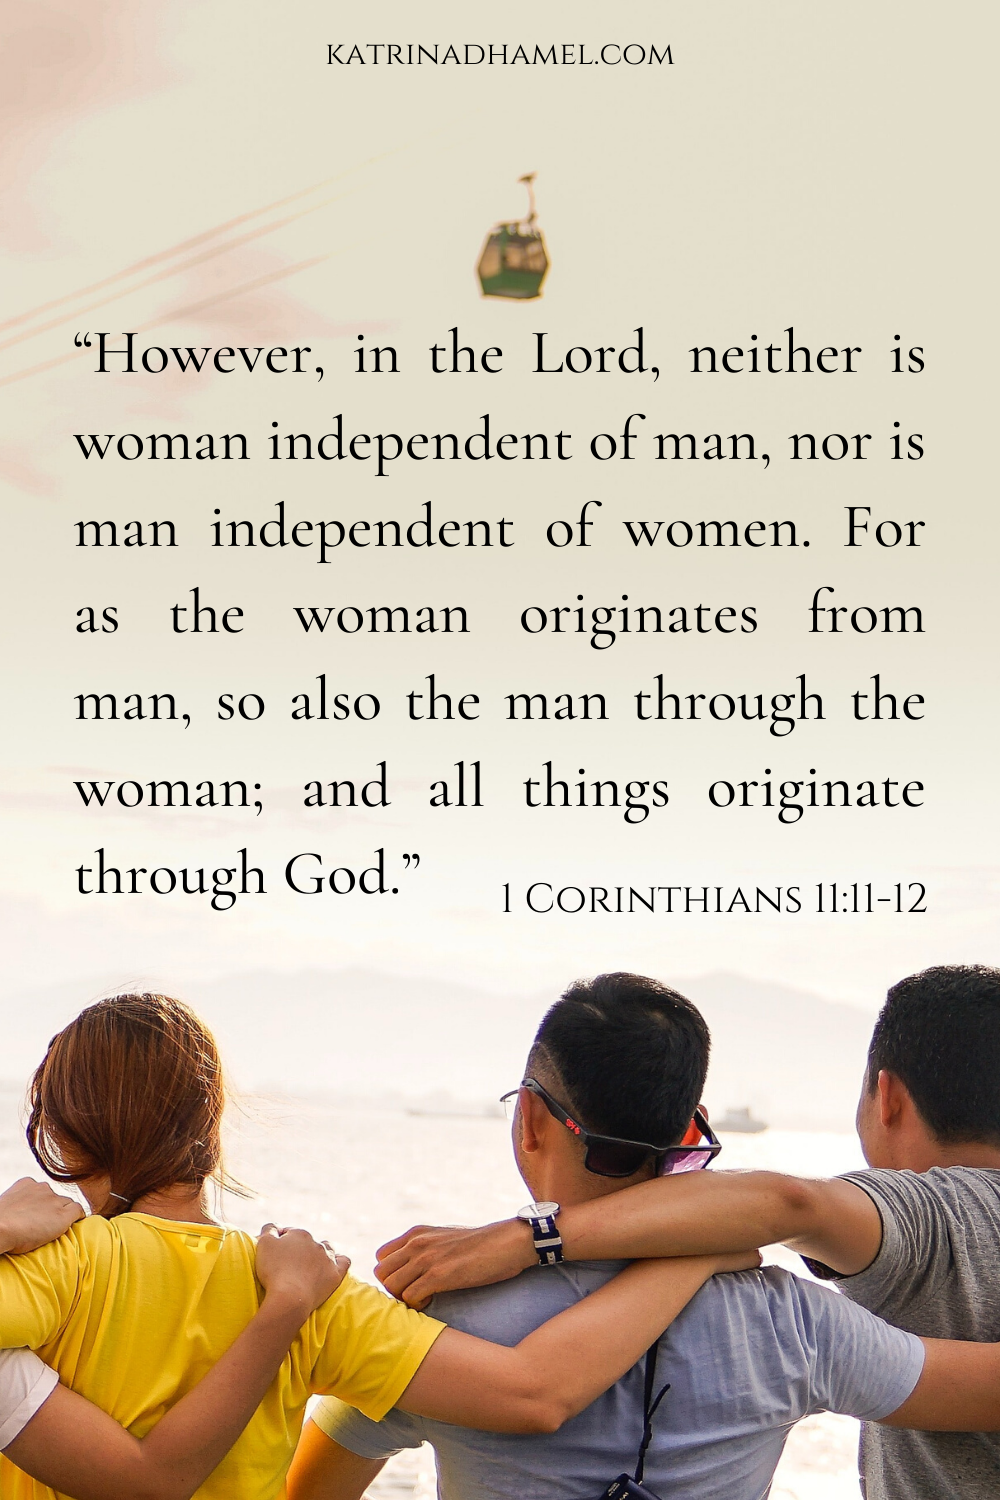 Men and women friends 1 Corinthians 11:11-12